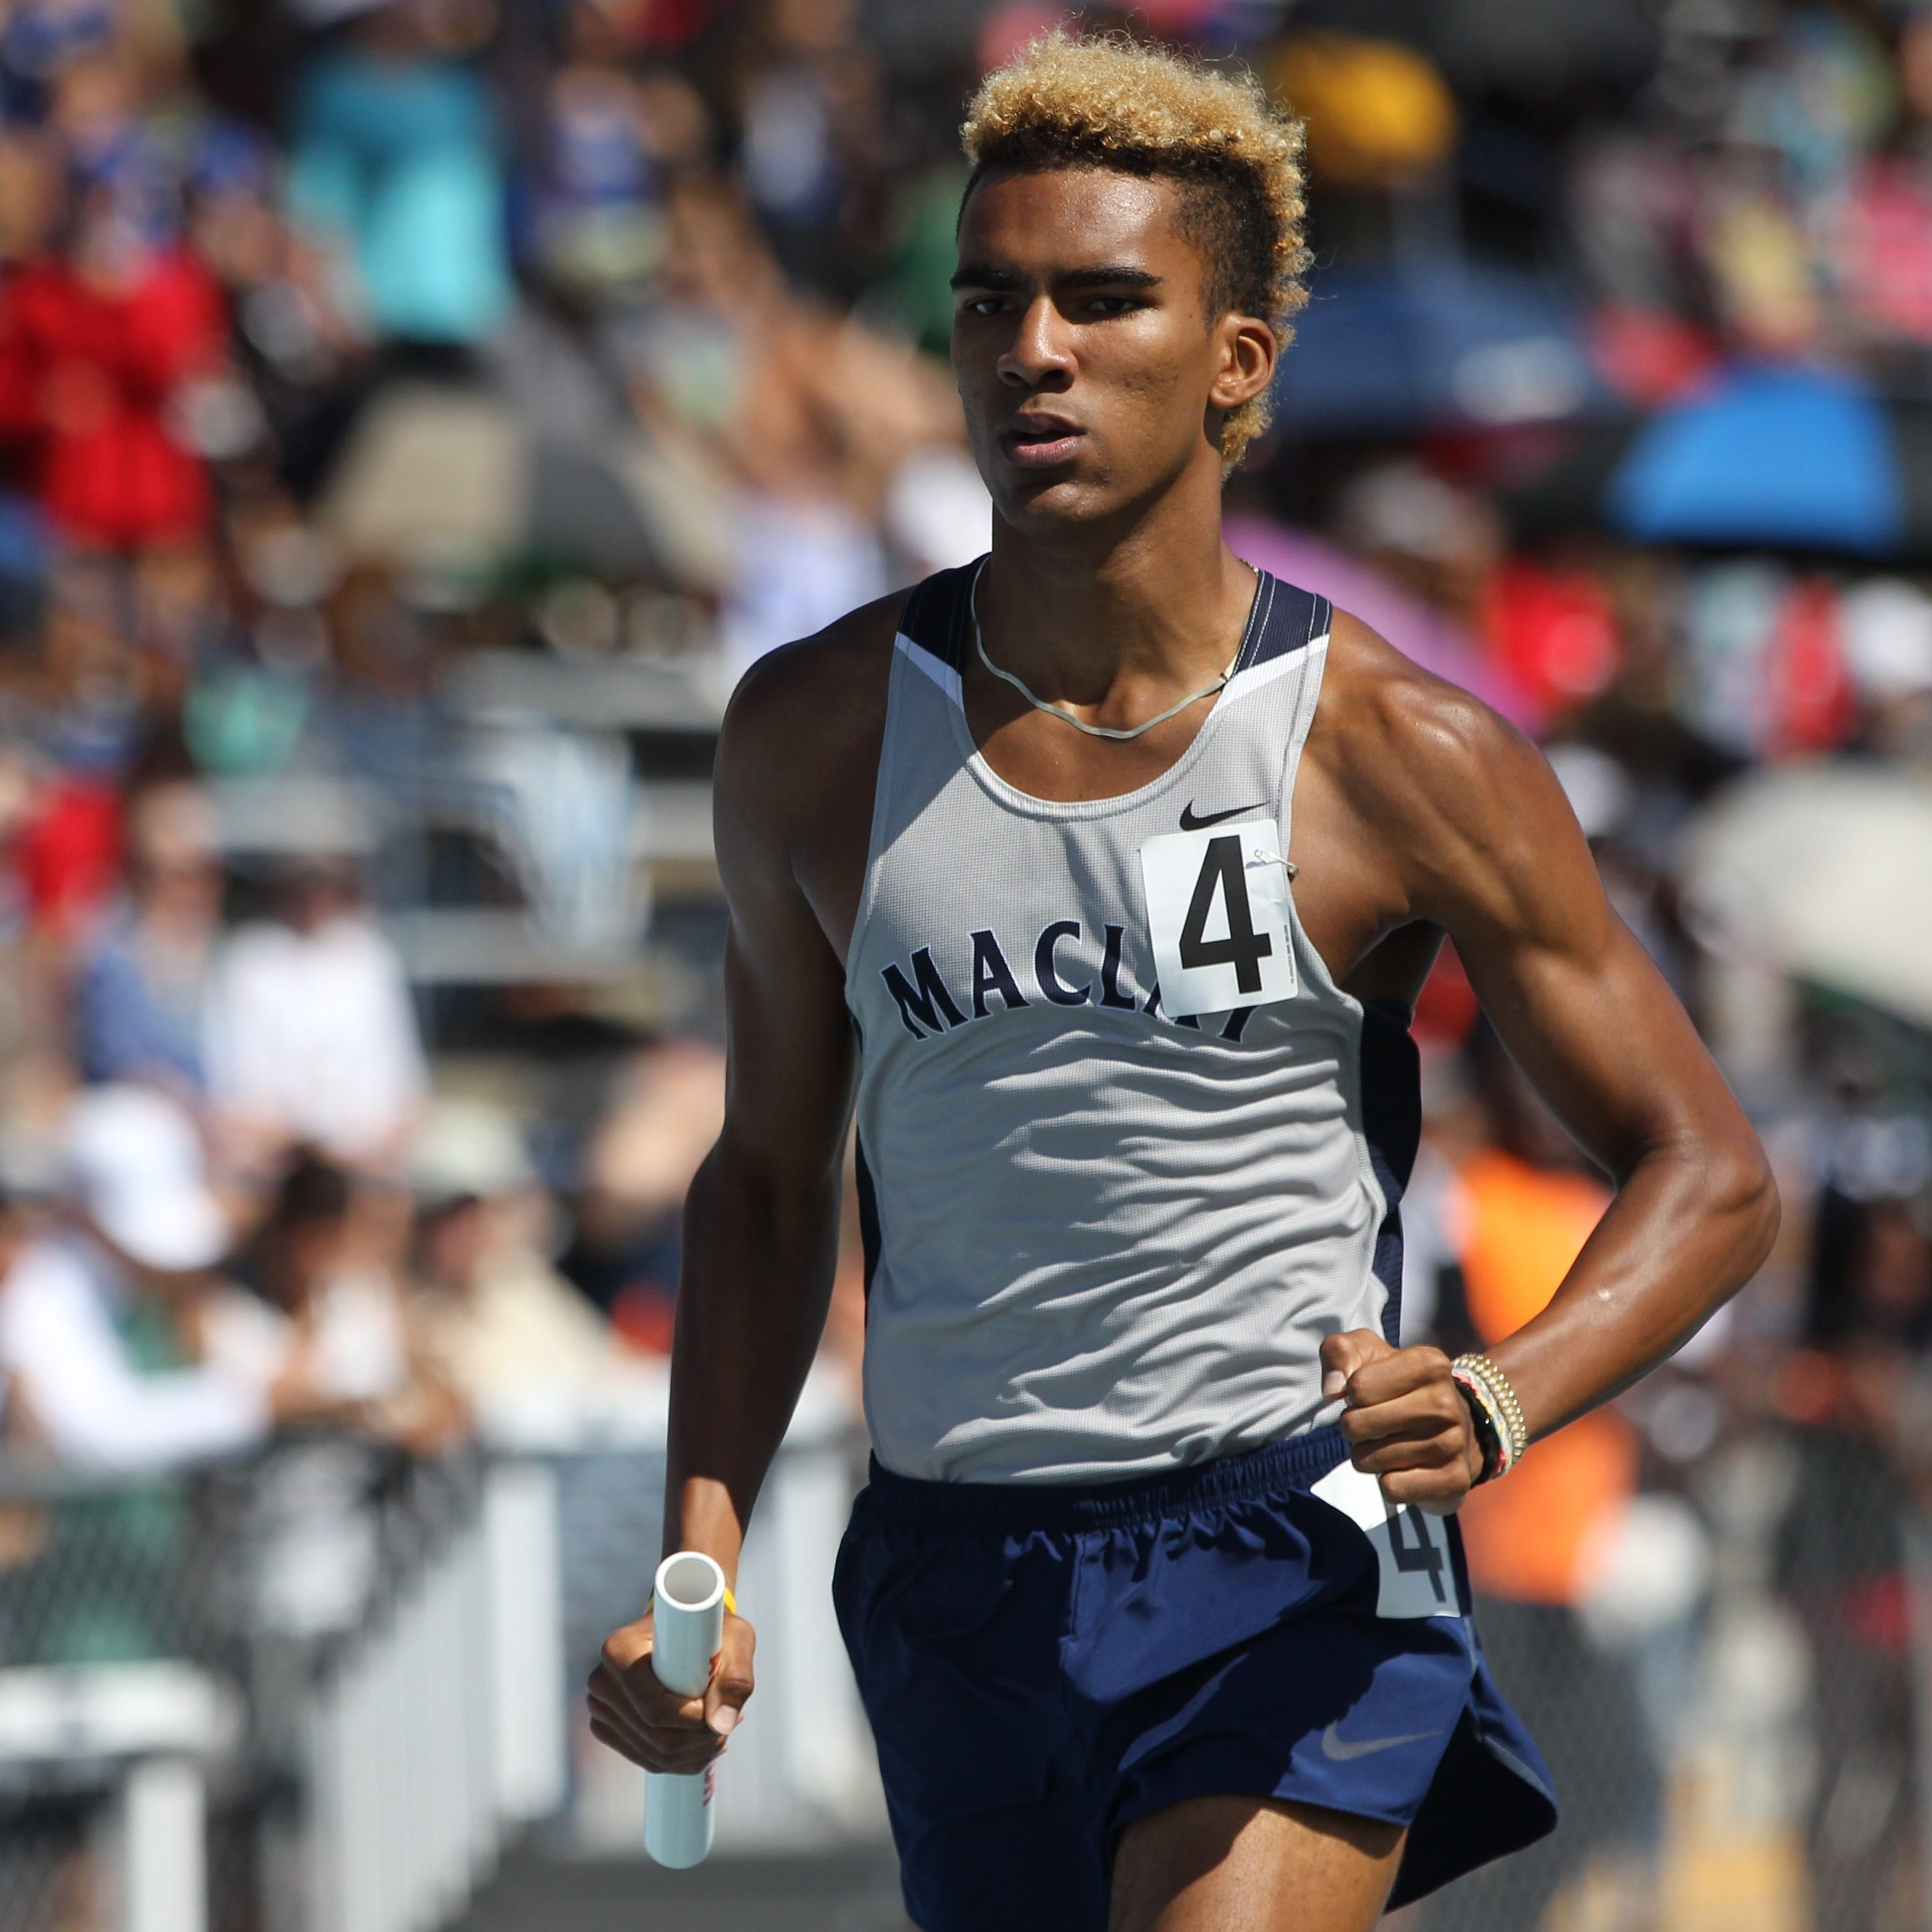 State track: Maclay double gold winner Brown among area's top performances